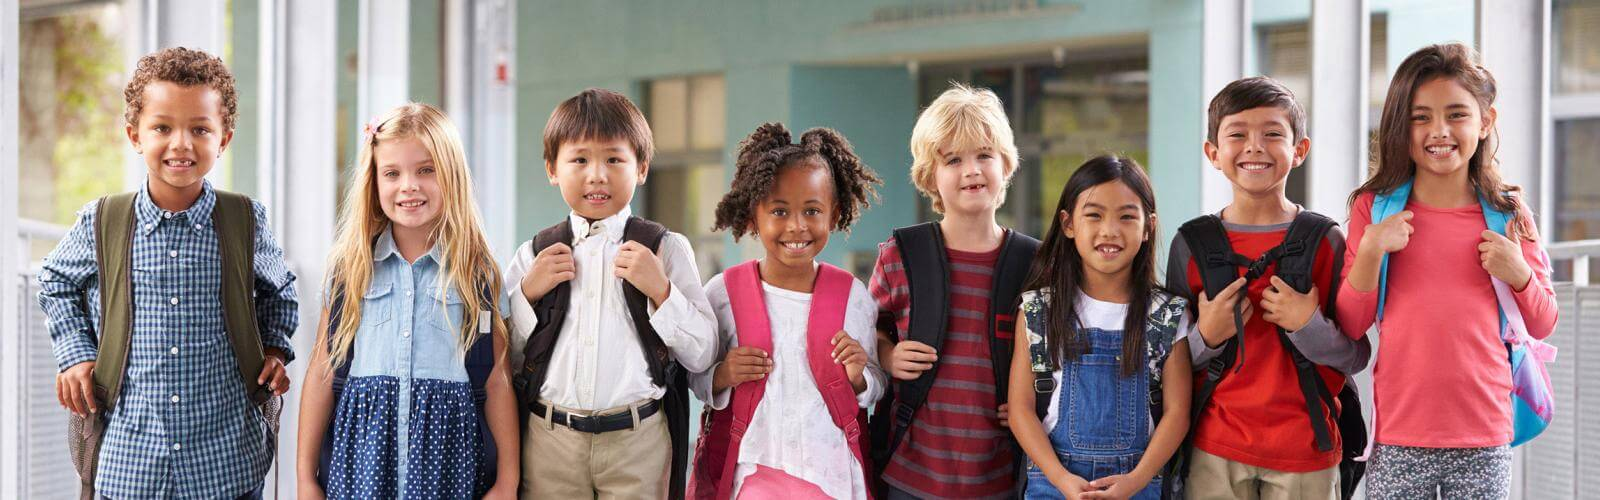 Education Kids with Backpacks